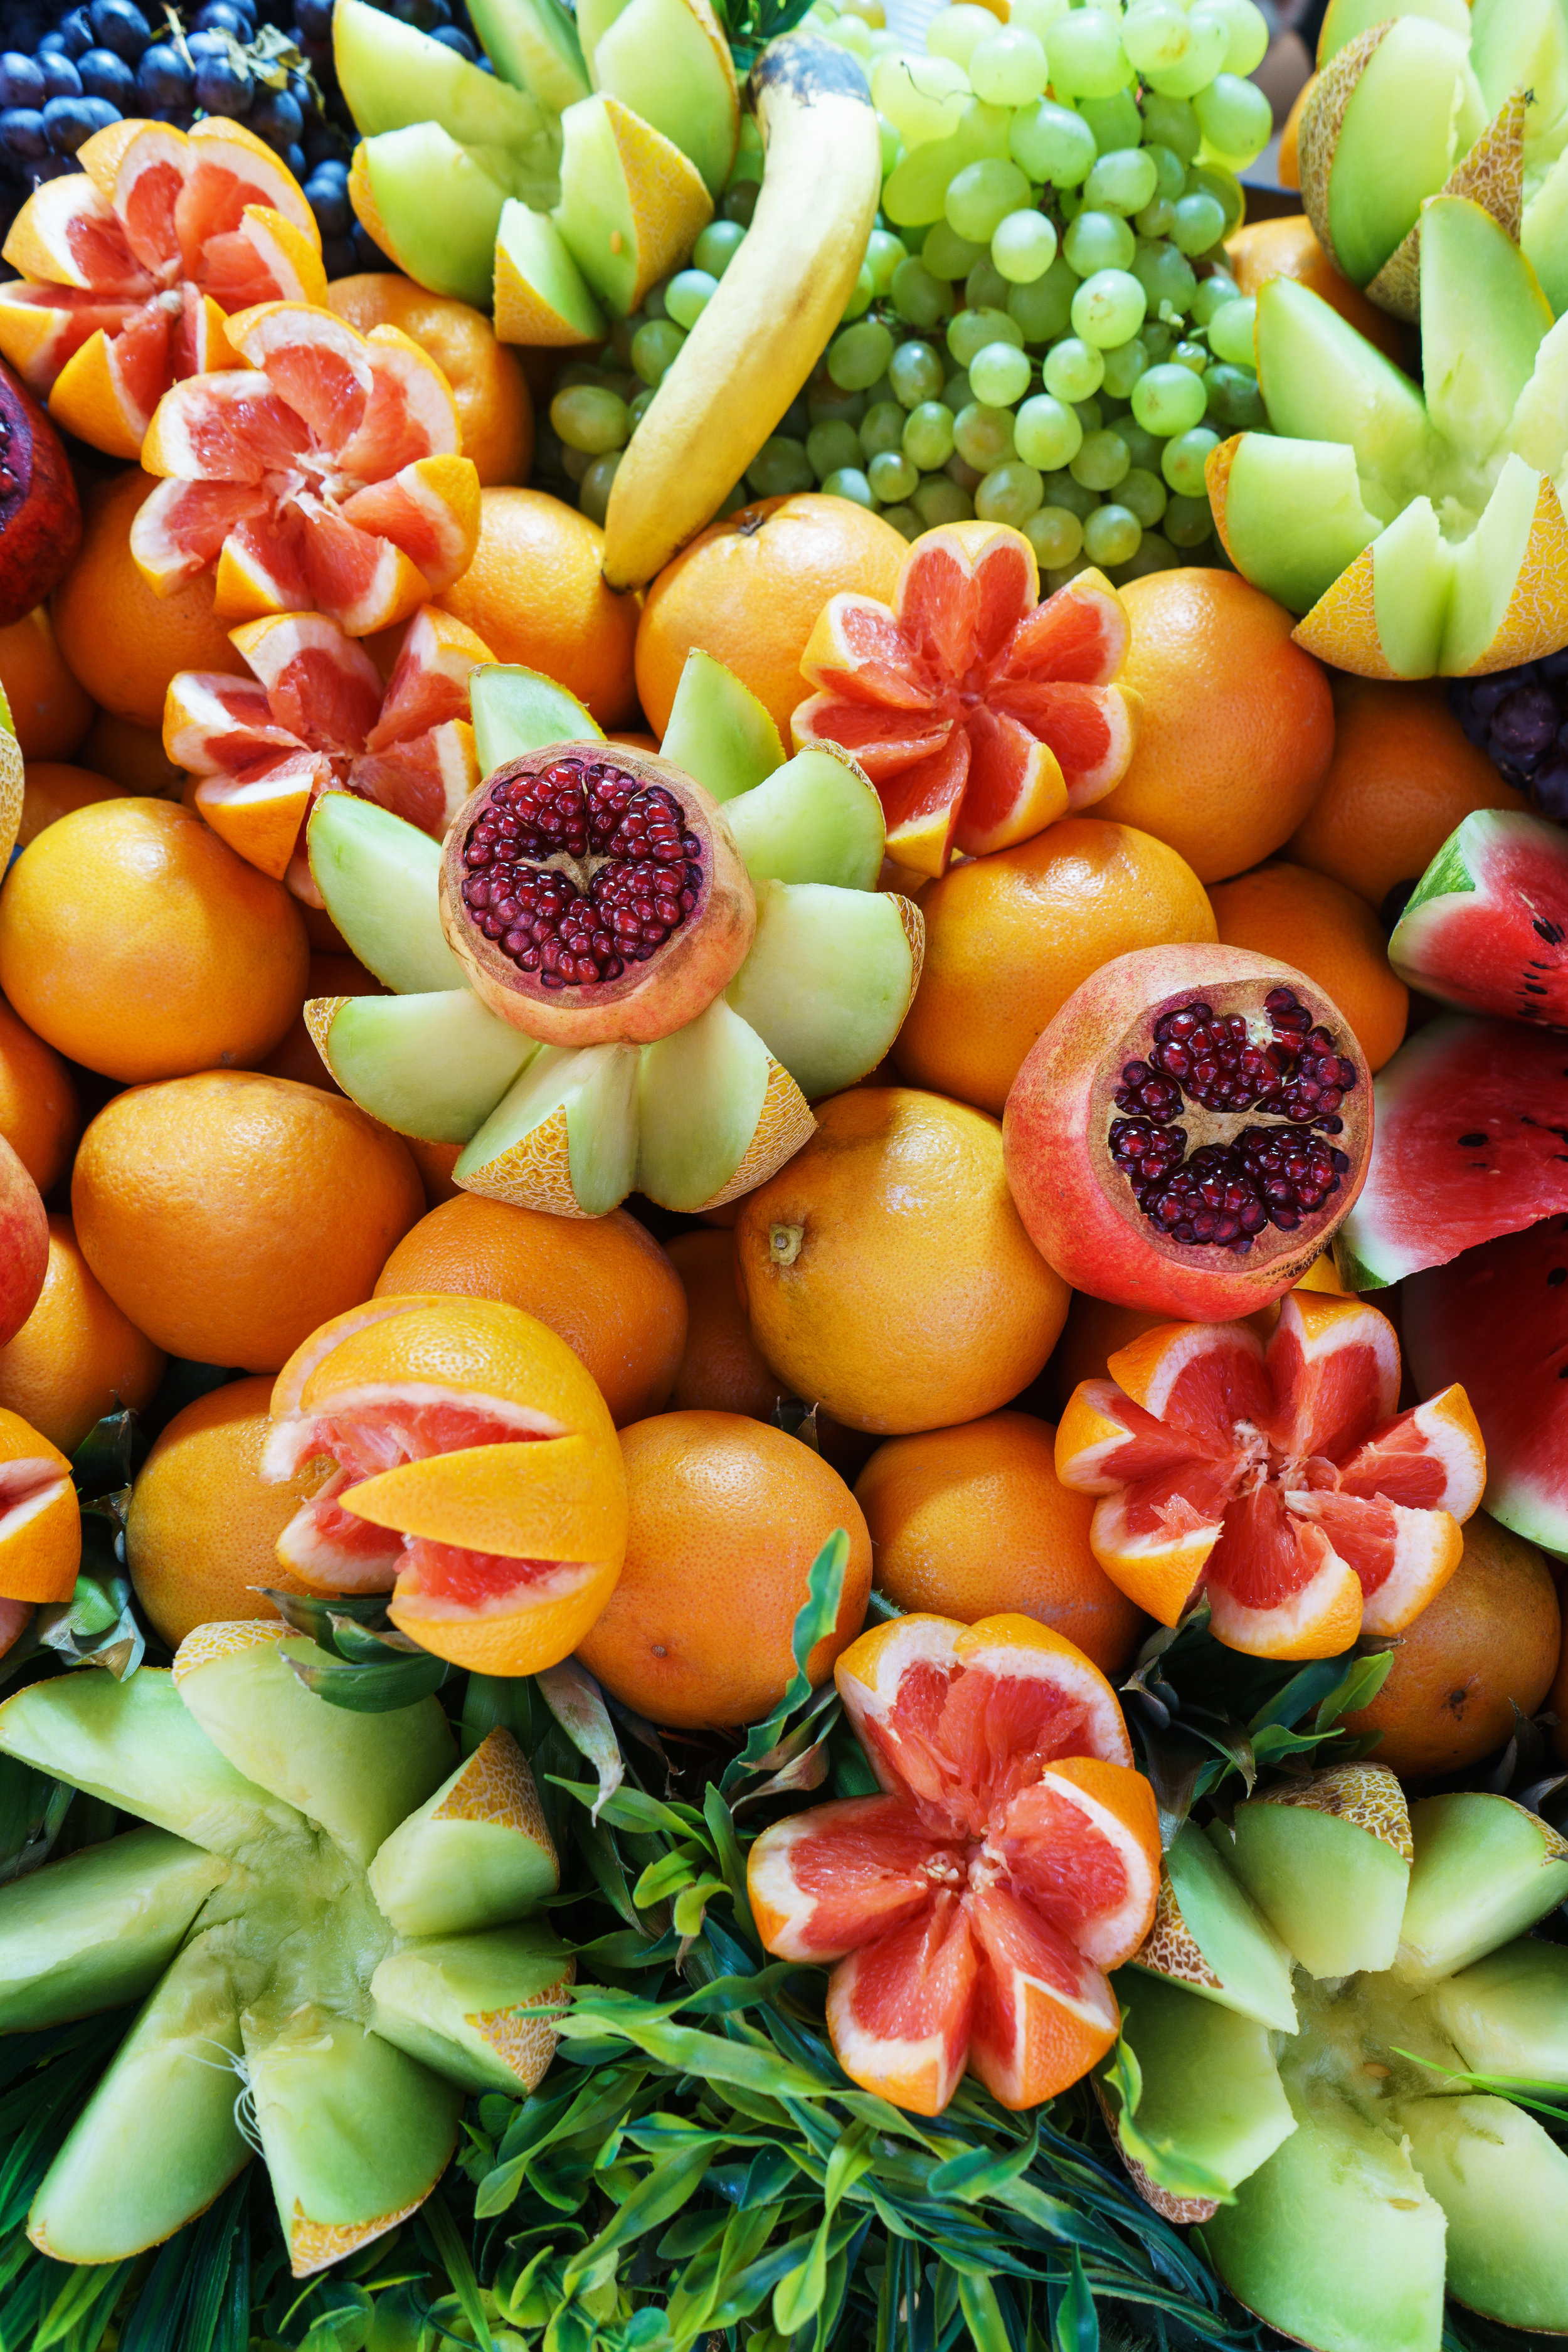 bright-juicy-fruits-in-the-assortment-on-the-LT7MQZK.jpg